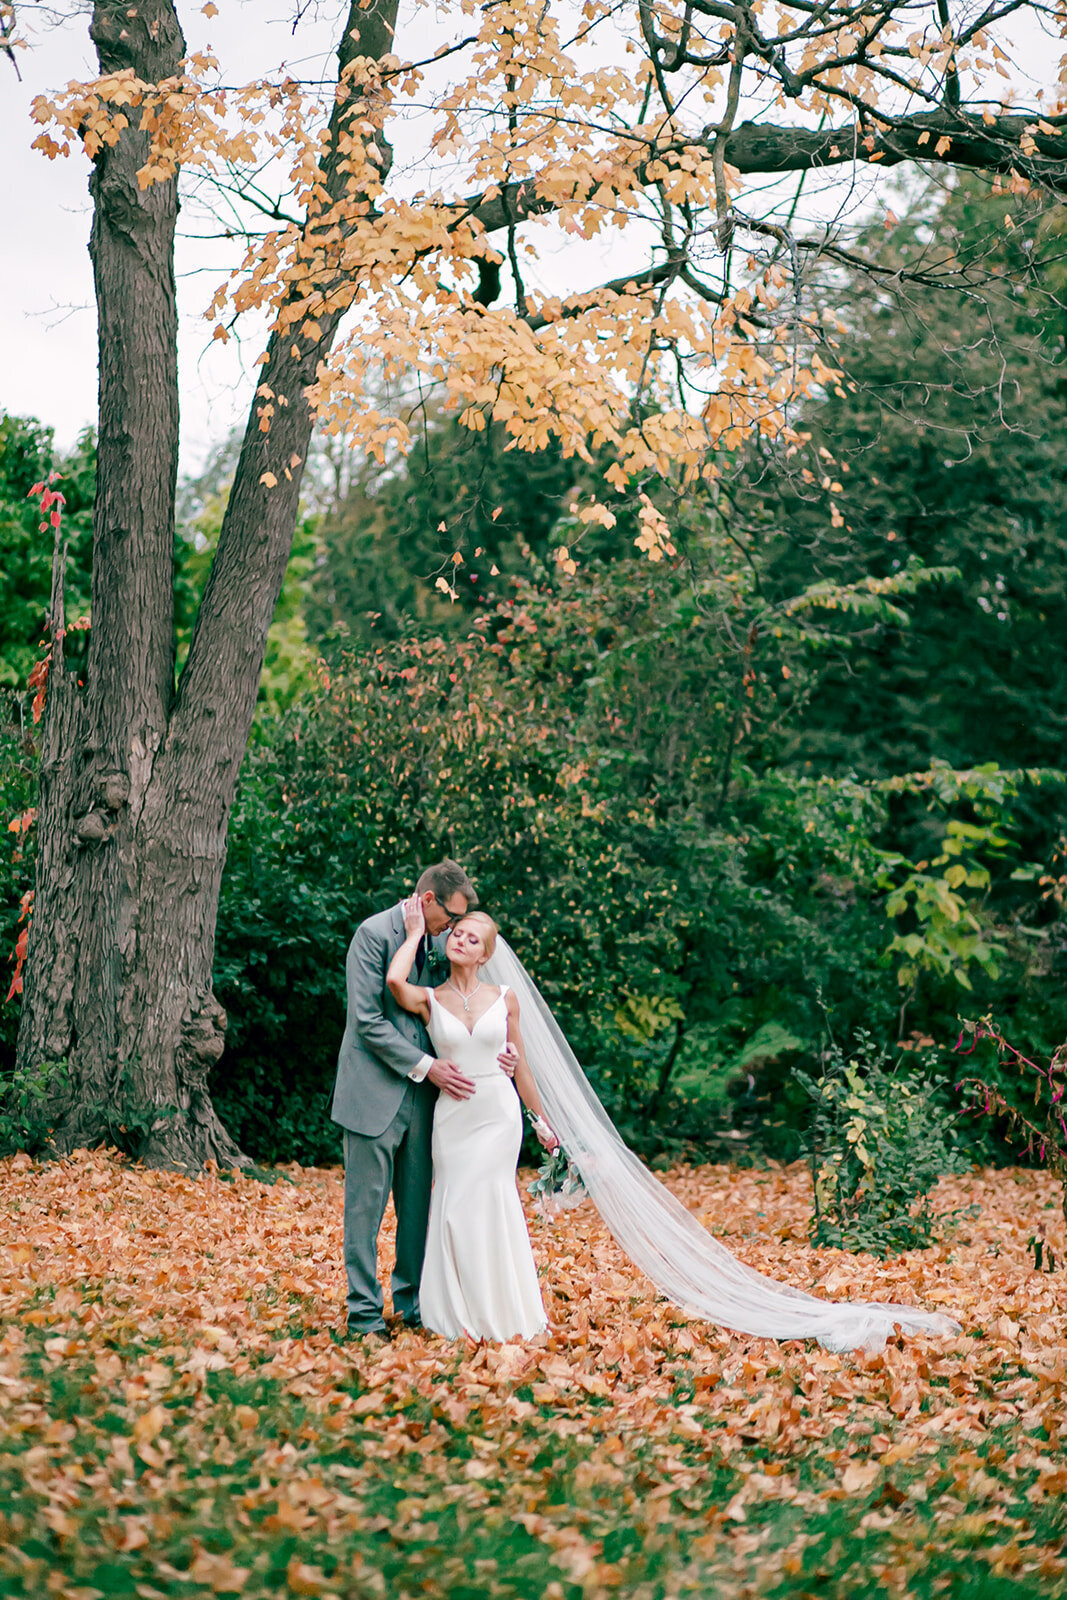 Tracy&Andy_October19,2020_0243_websize